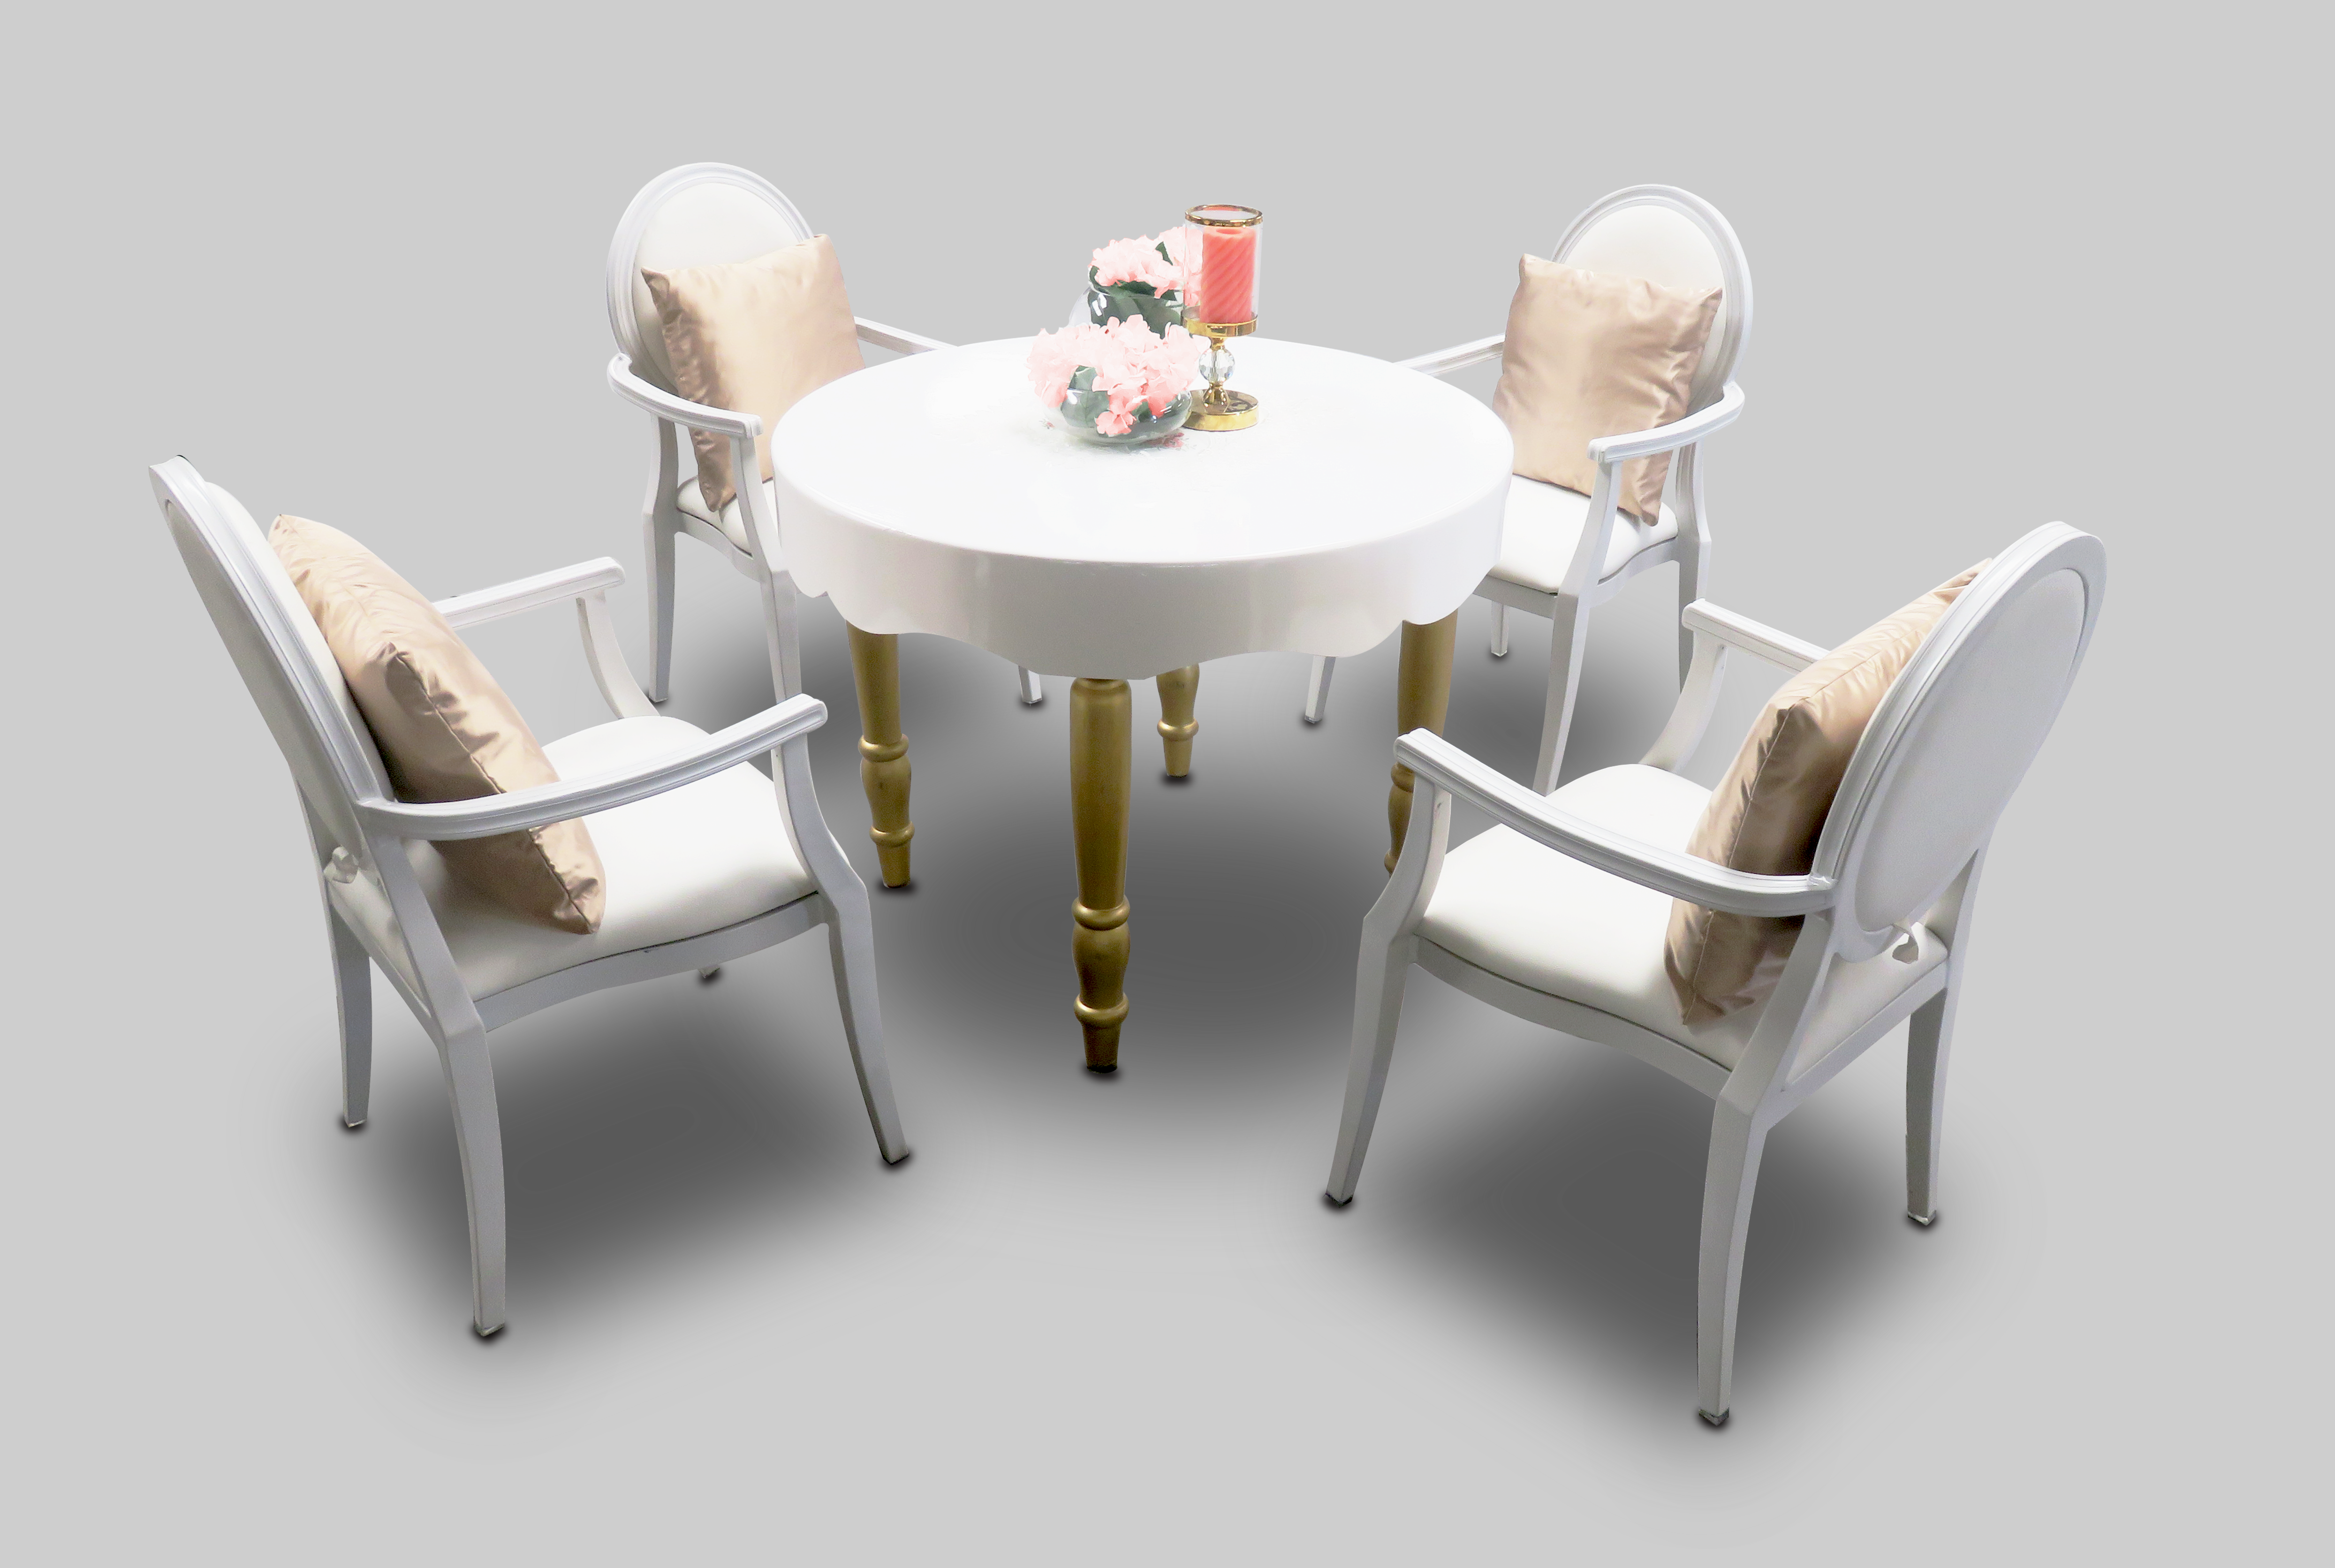 Avalon Chic Round Gold Dining Table available for rent or sale in